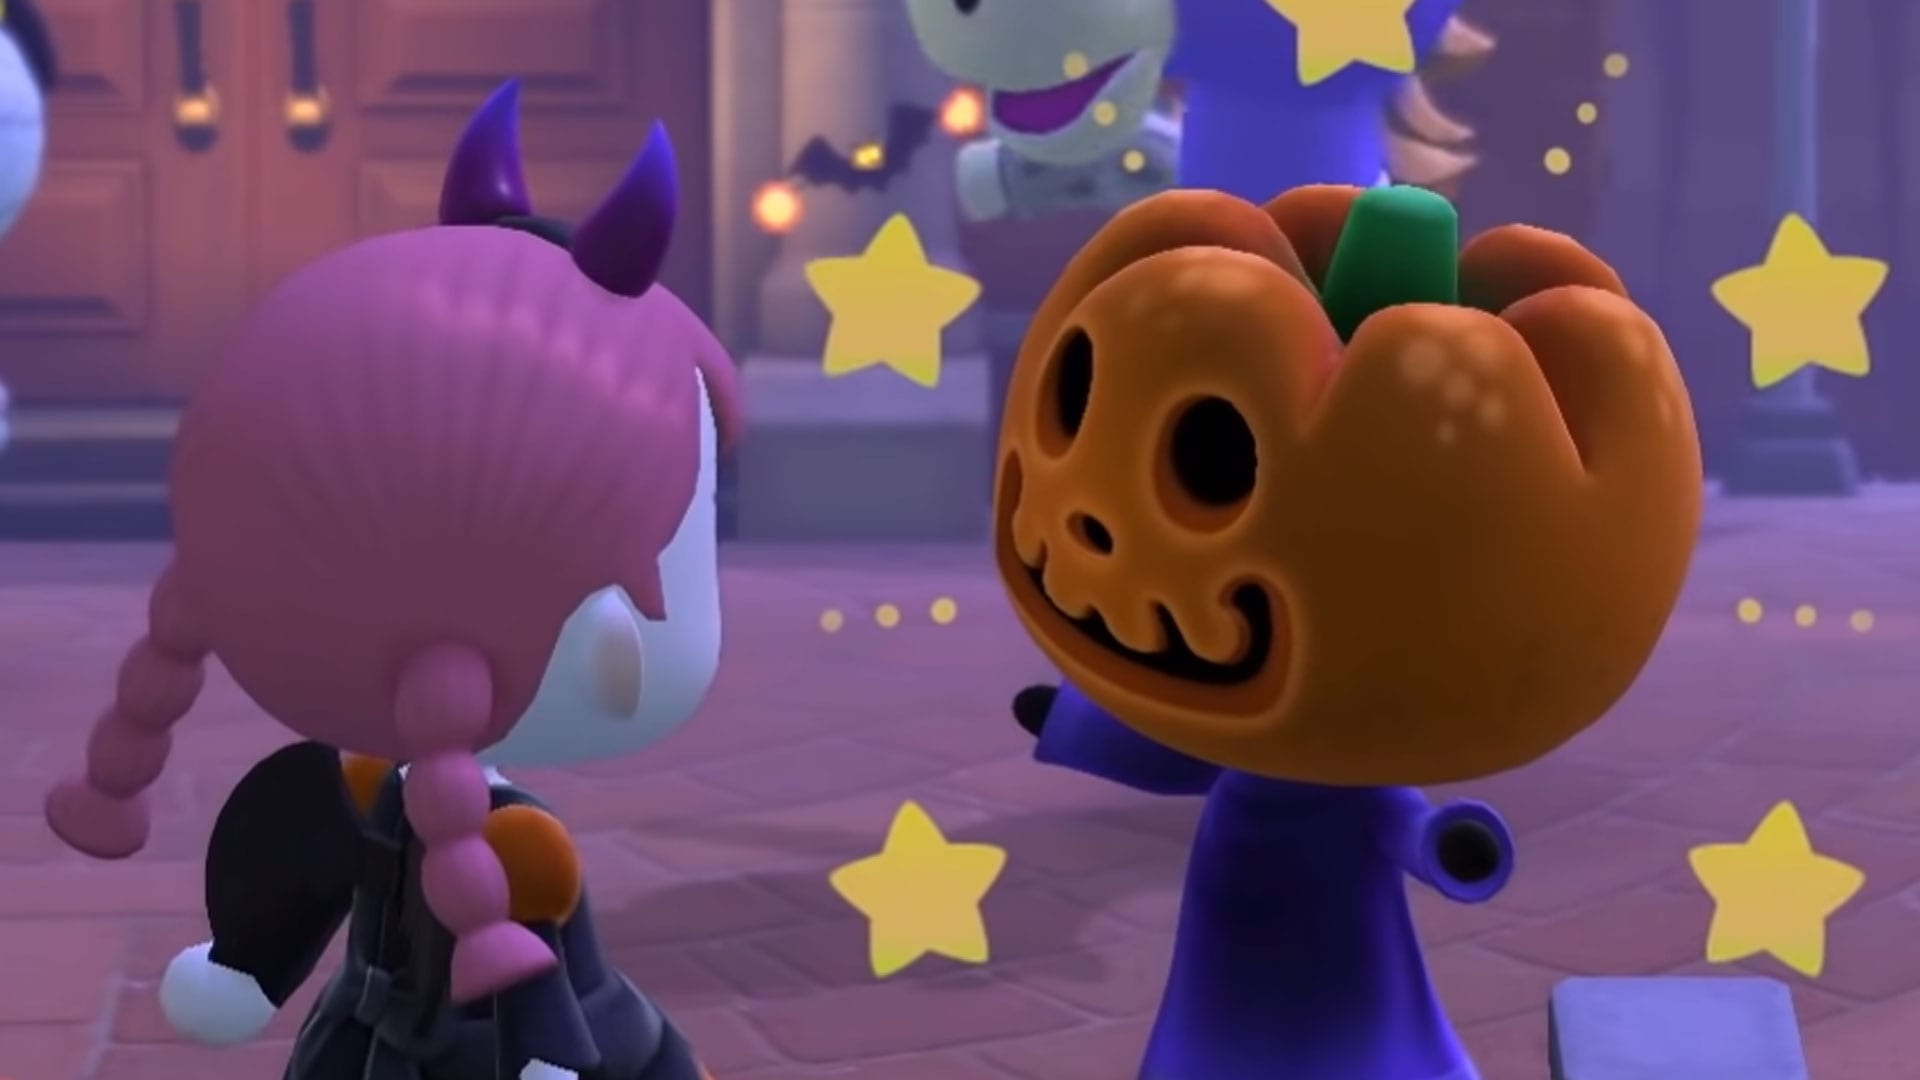 Finest Animal Crossing Halloween Home and Island Designs So Far in 2020 1